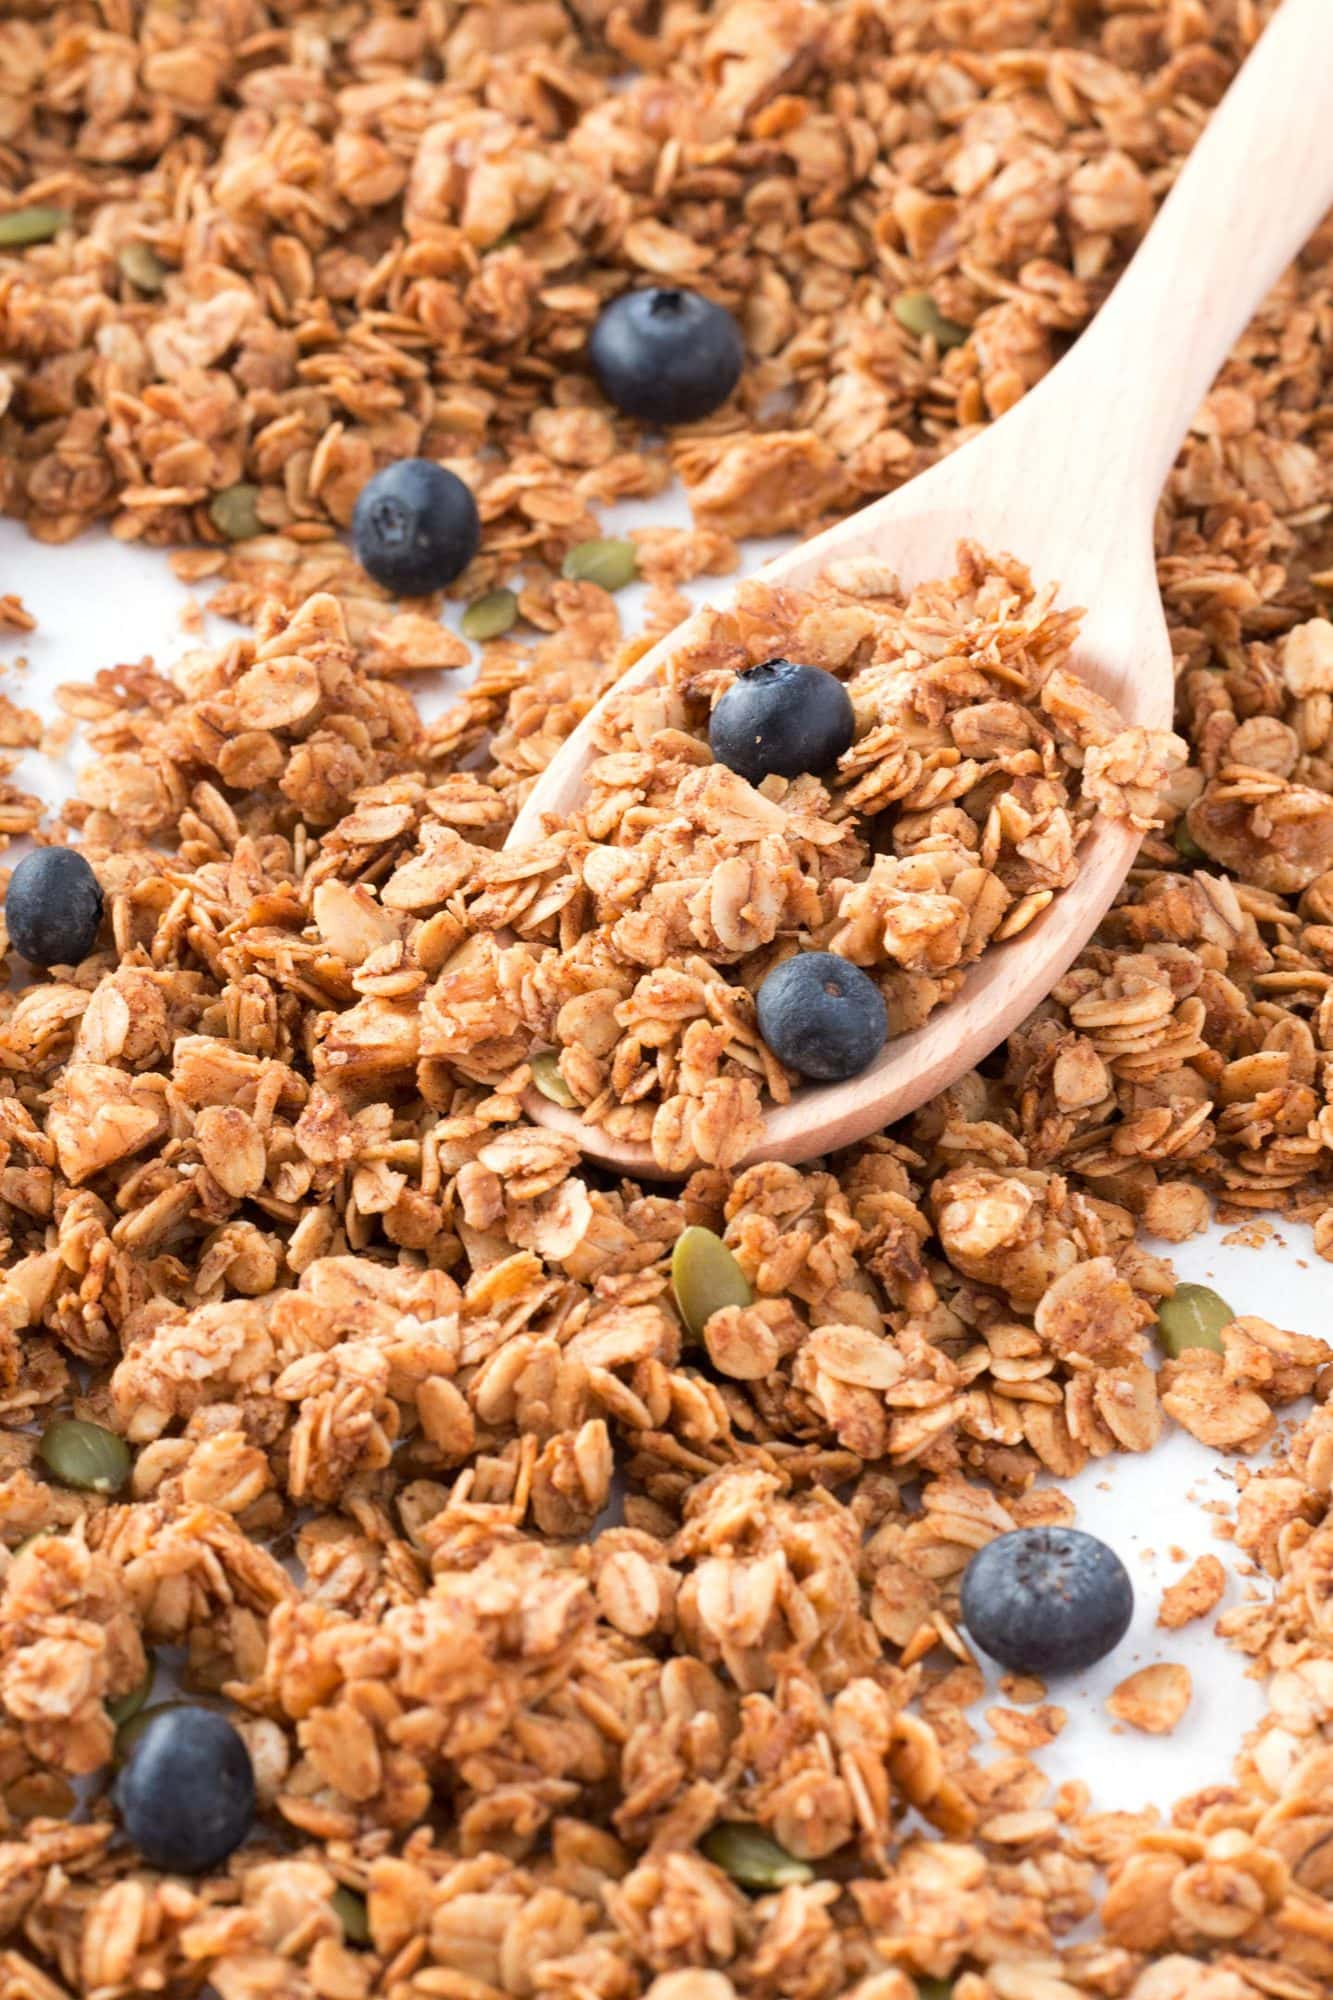 Sheet pan with wooden spoon in crunchy granola.